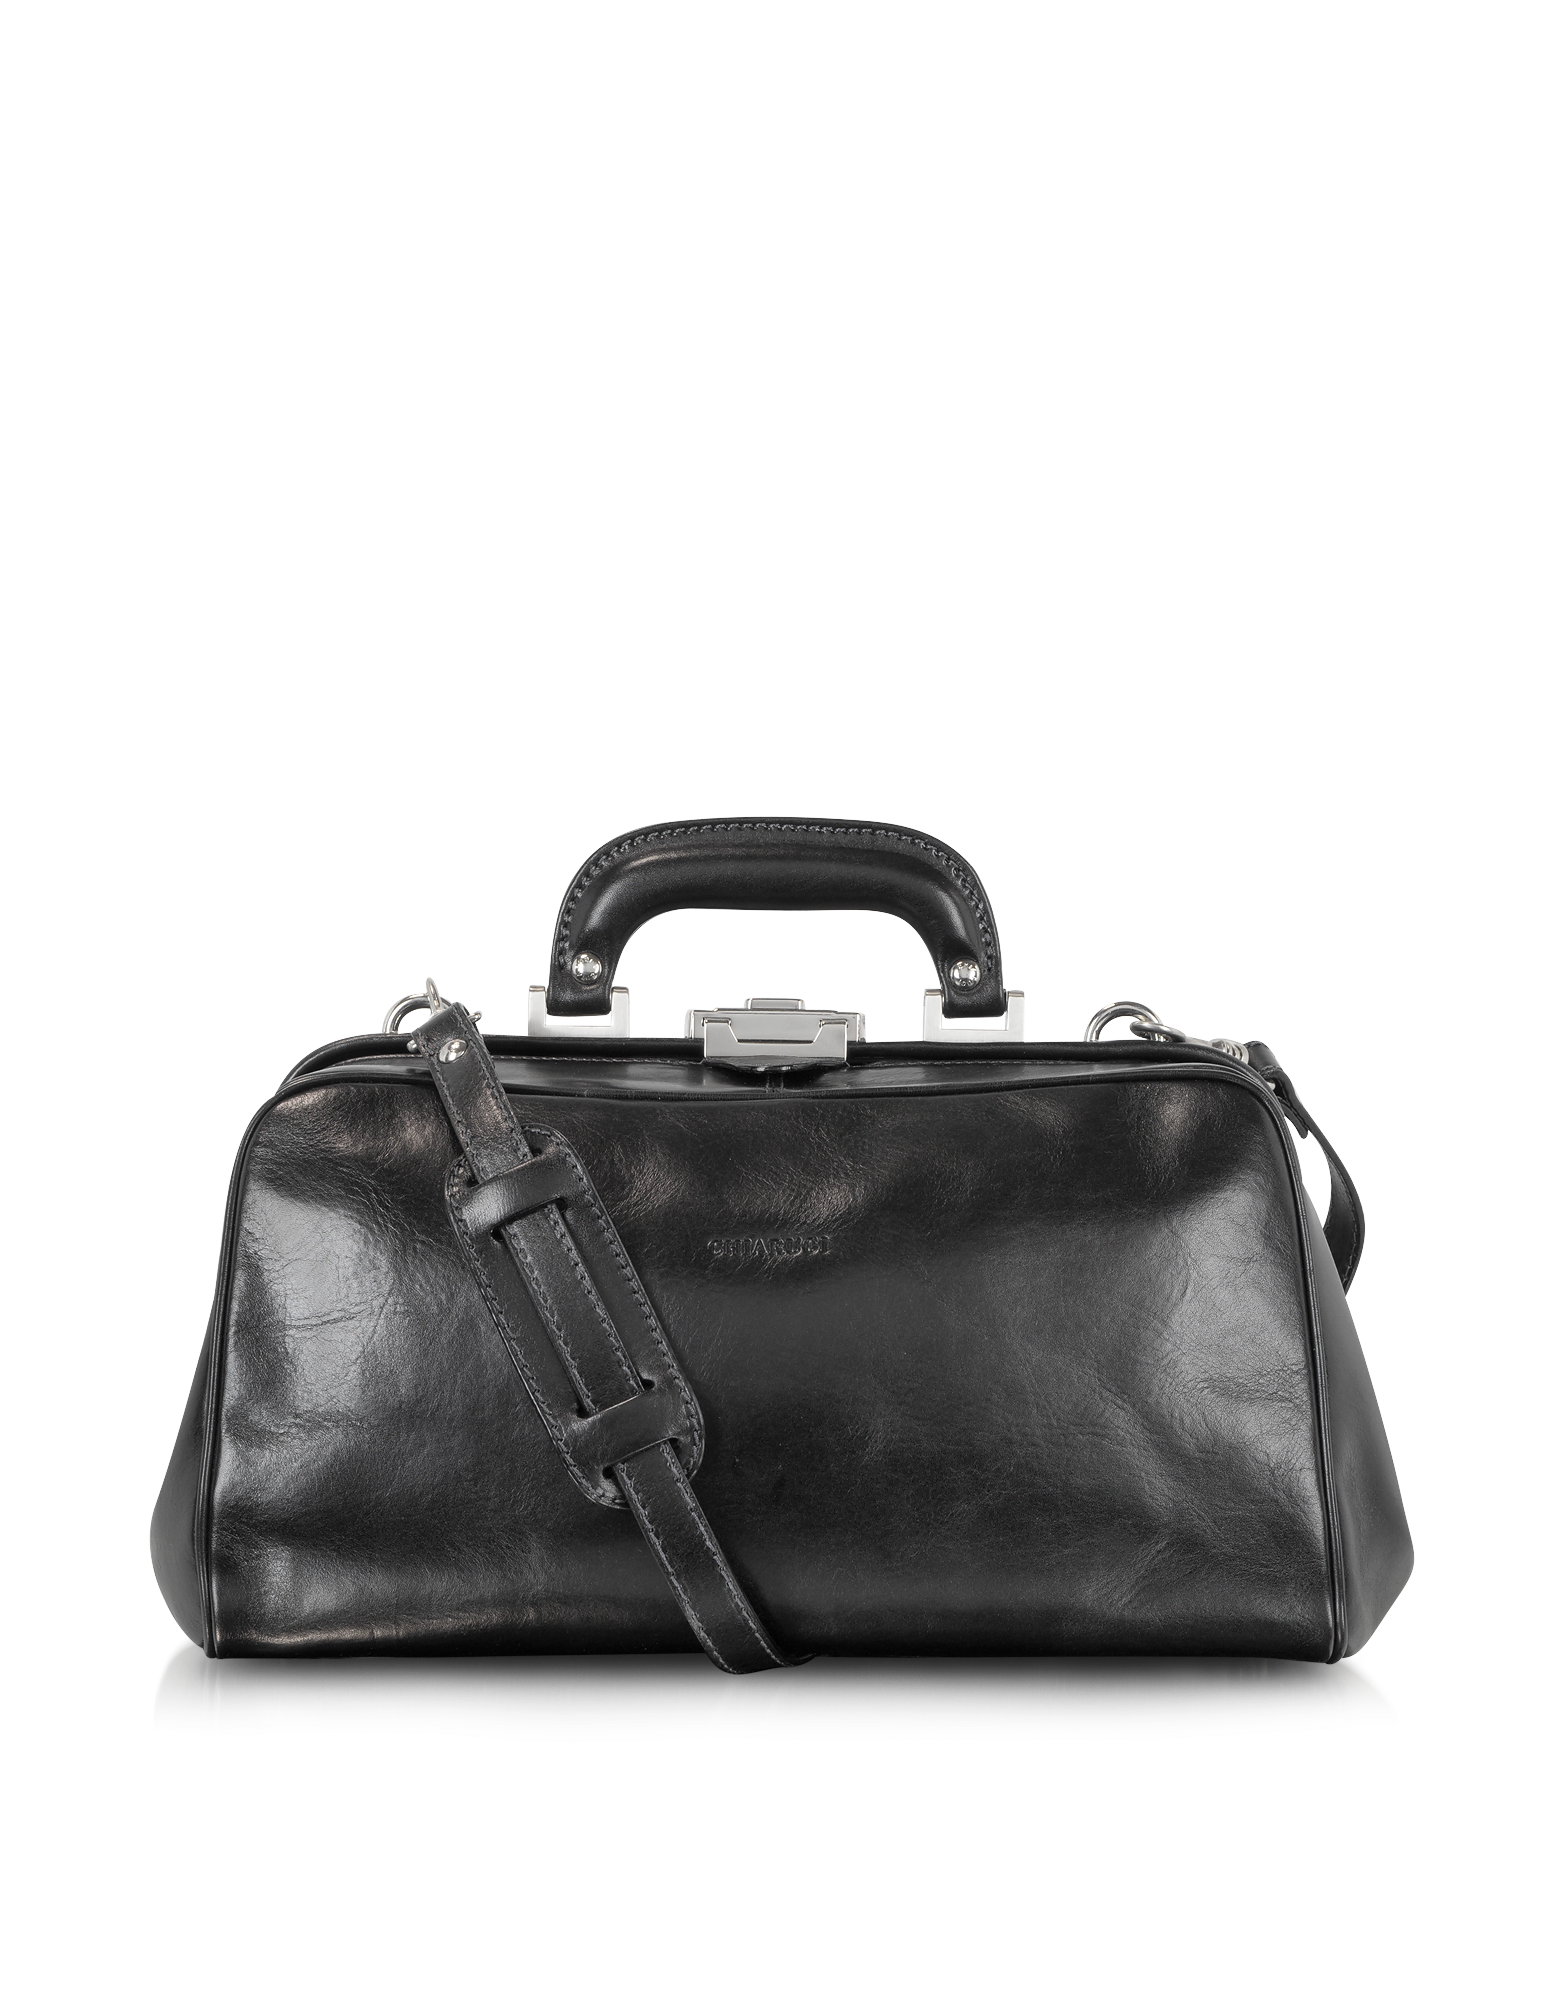 Image of Black Leather Handmade Professional Doctor Bag